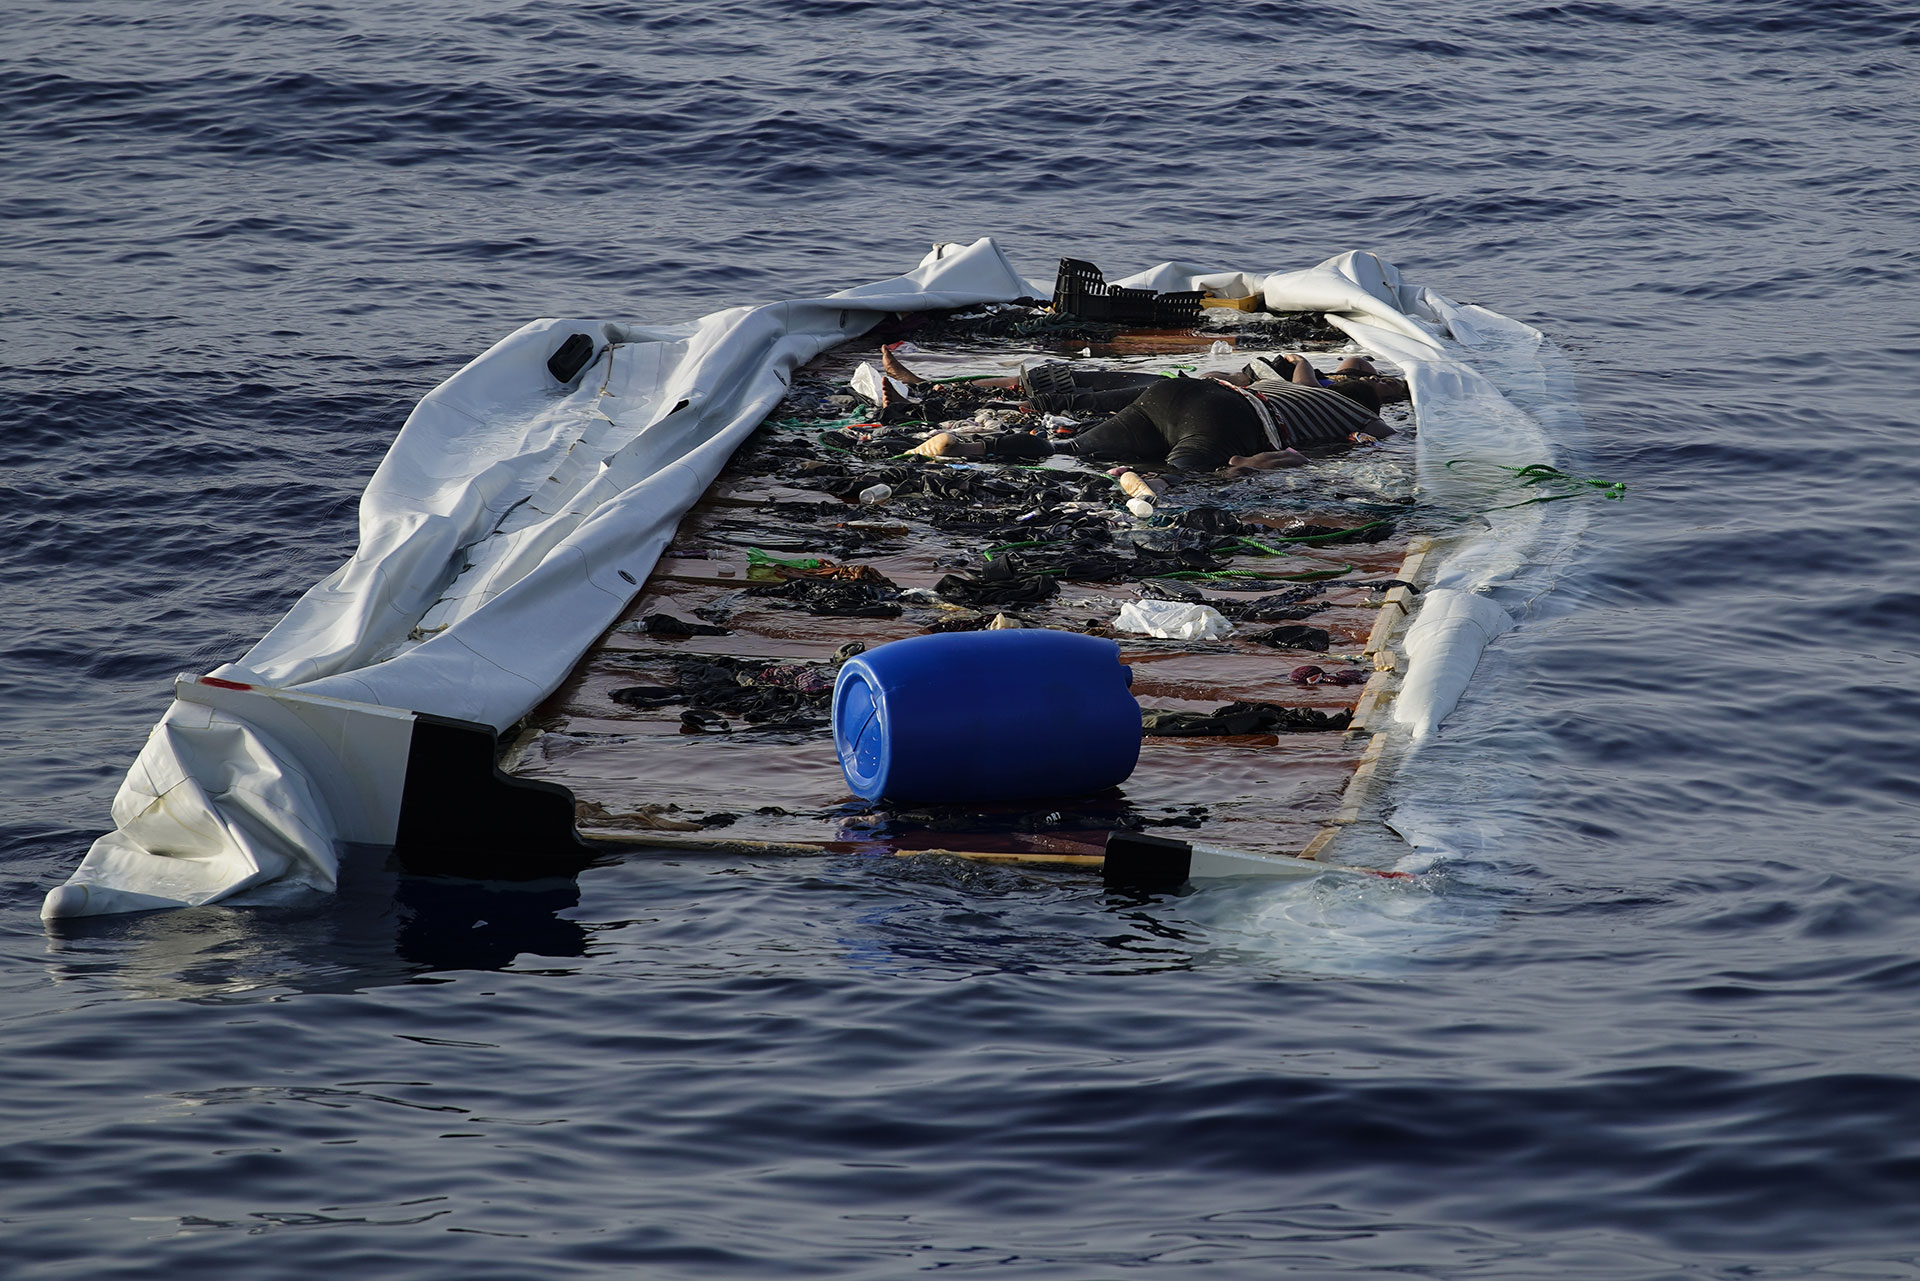 Josepha, the only survivor, alongside the bodies of a young boy and a woman in an abandoned dinghy floating in the central Mediterranean Sea, 17 July 2018.